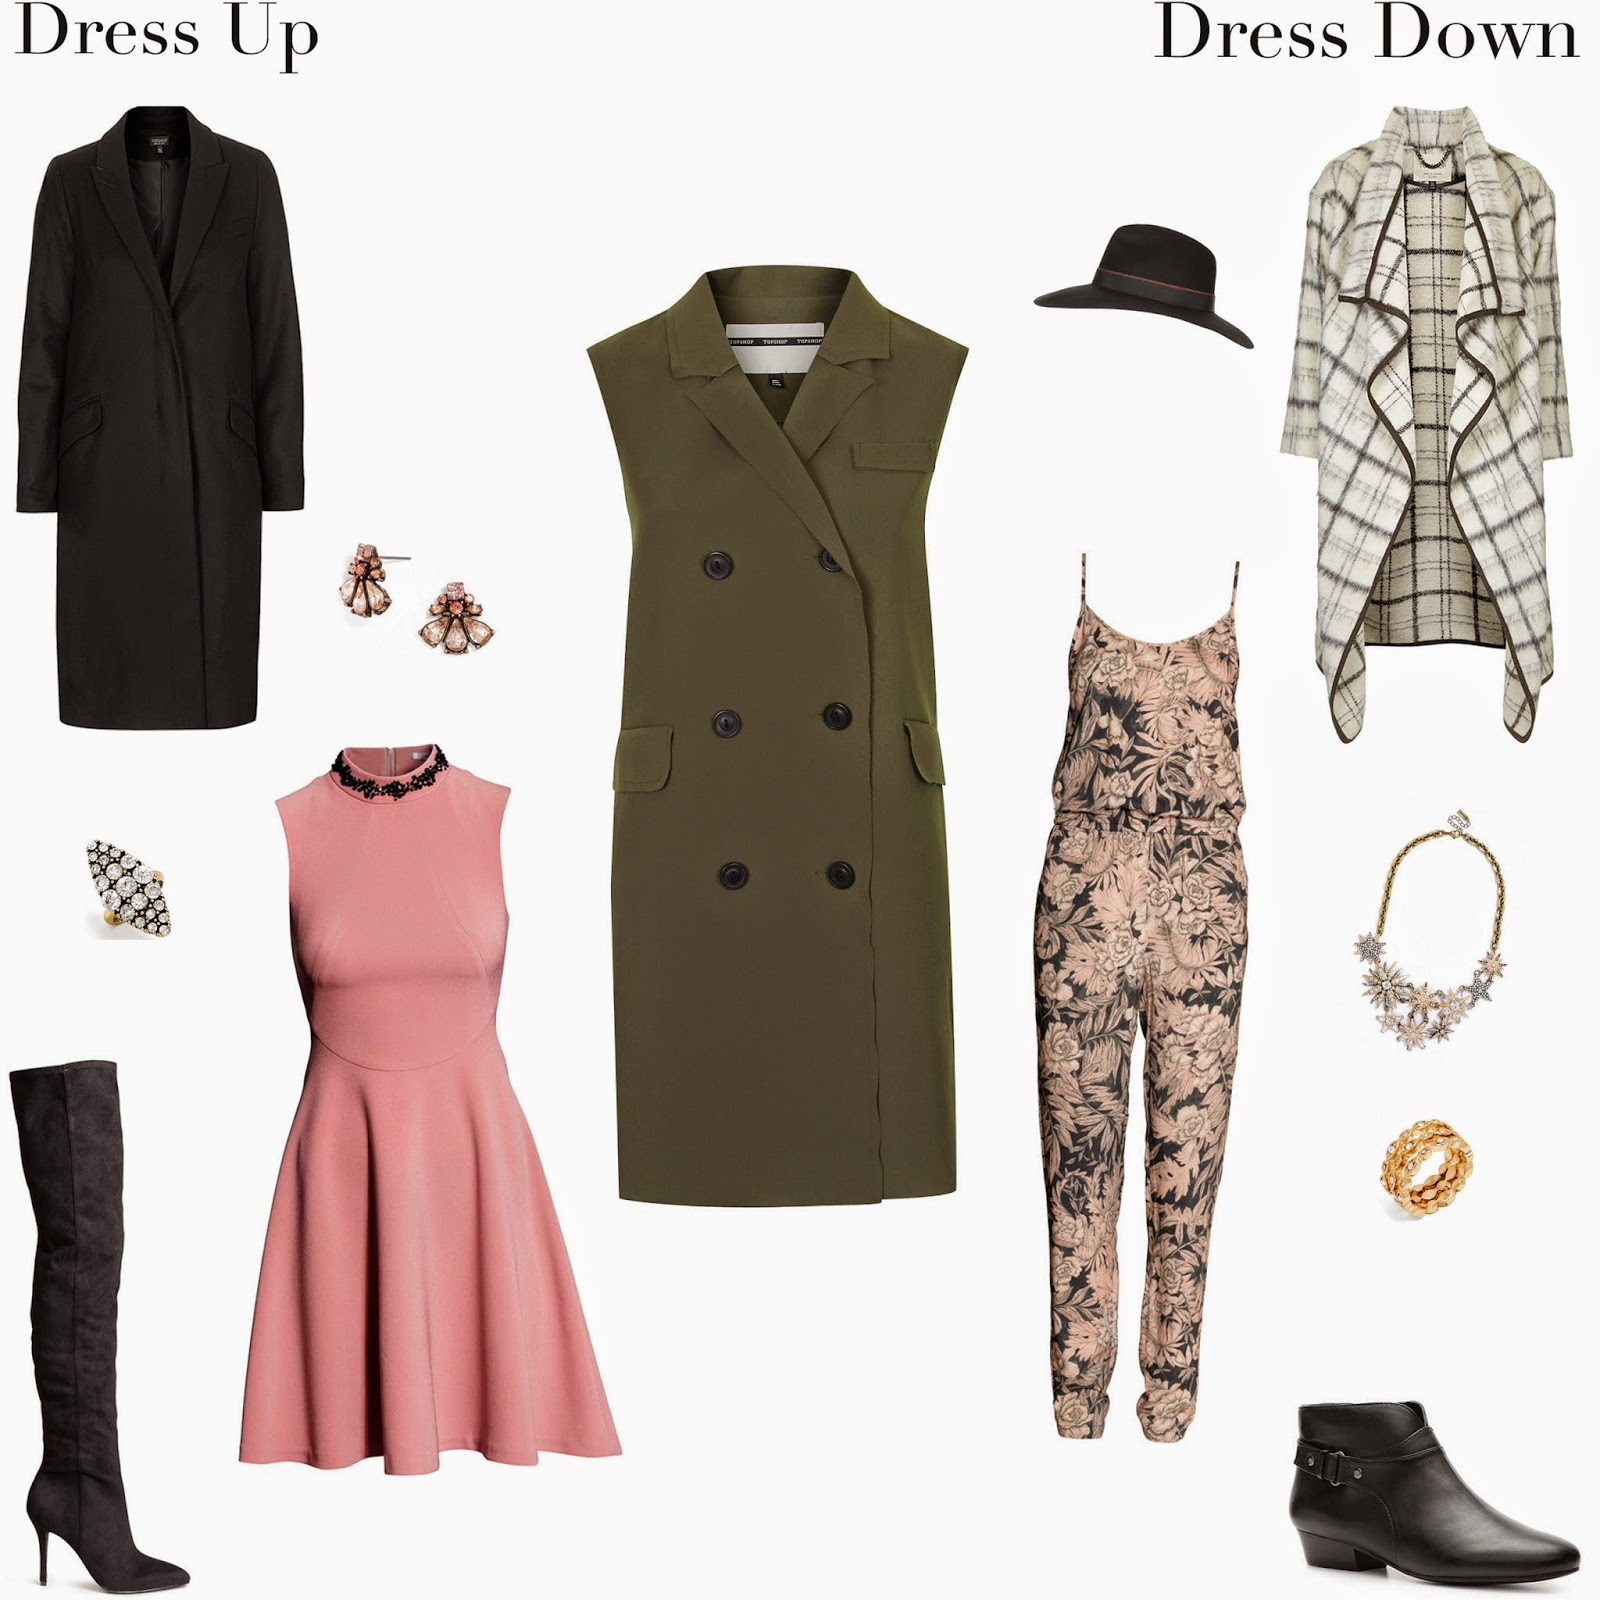 Edie's Closet; Topshop Vest Dress Up and Dress Down